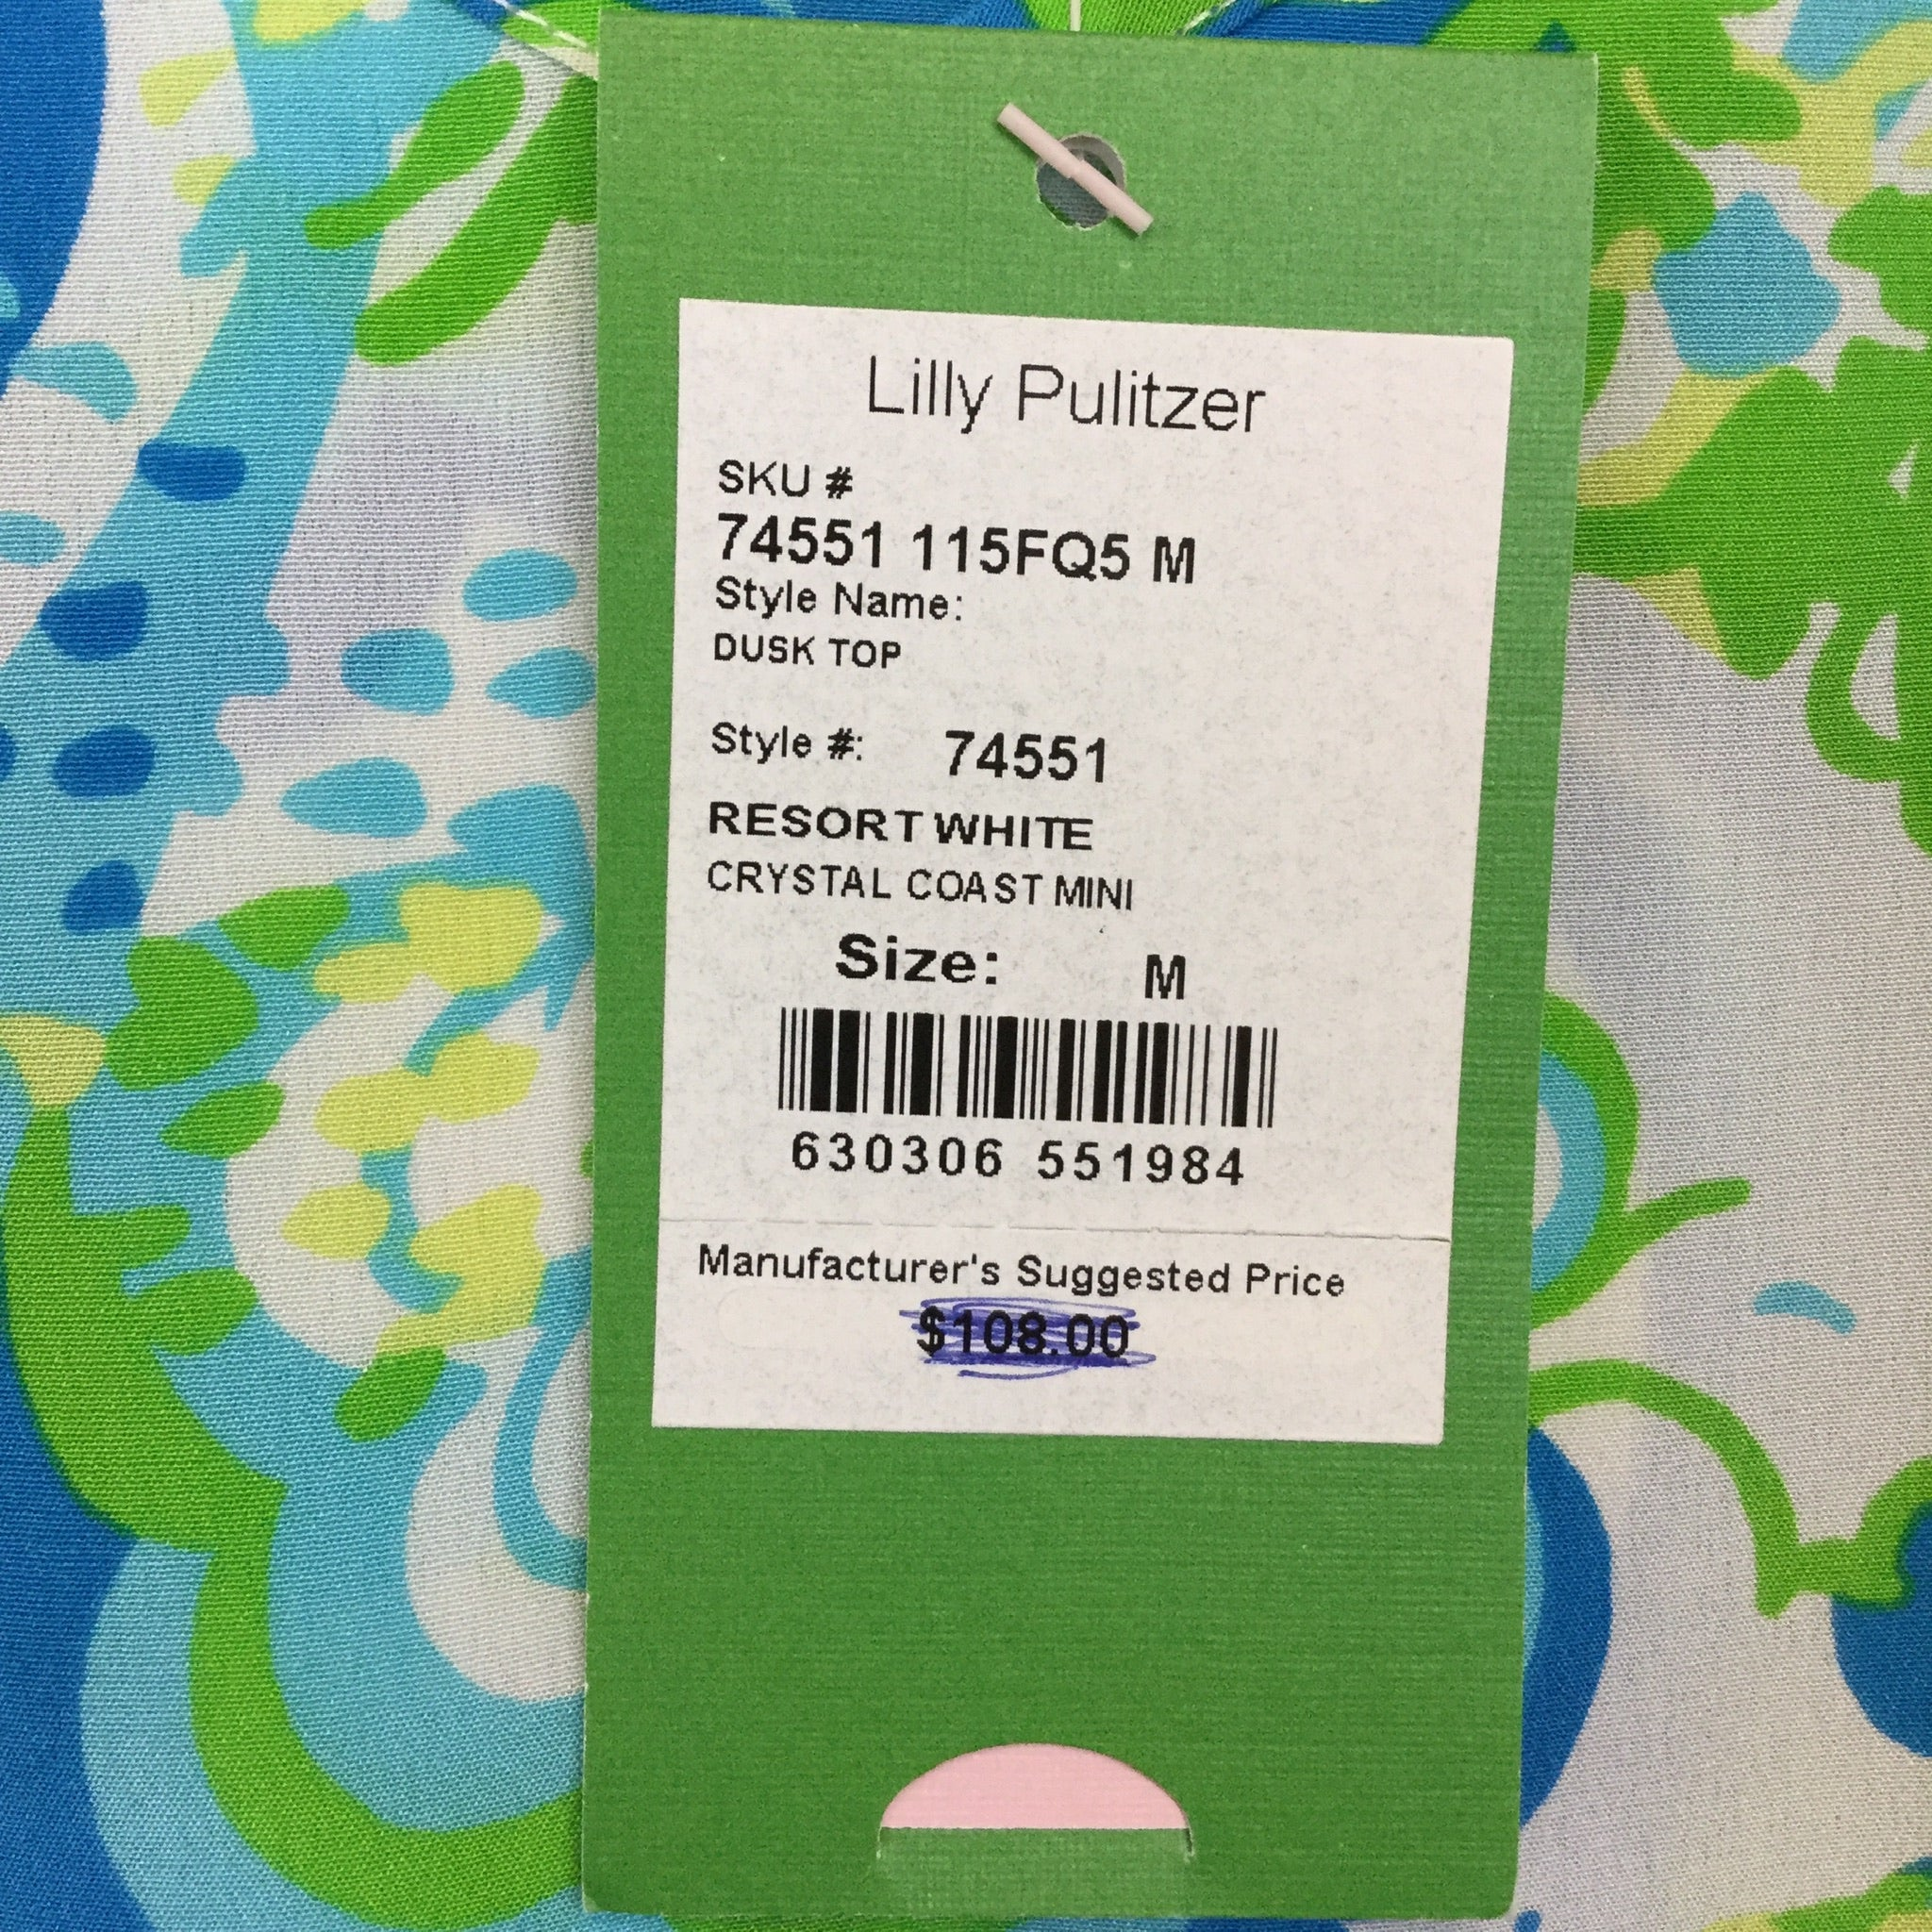 Lilly Pulitzer Dusk Top - M